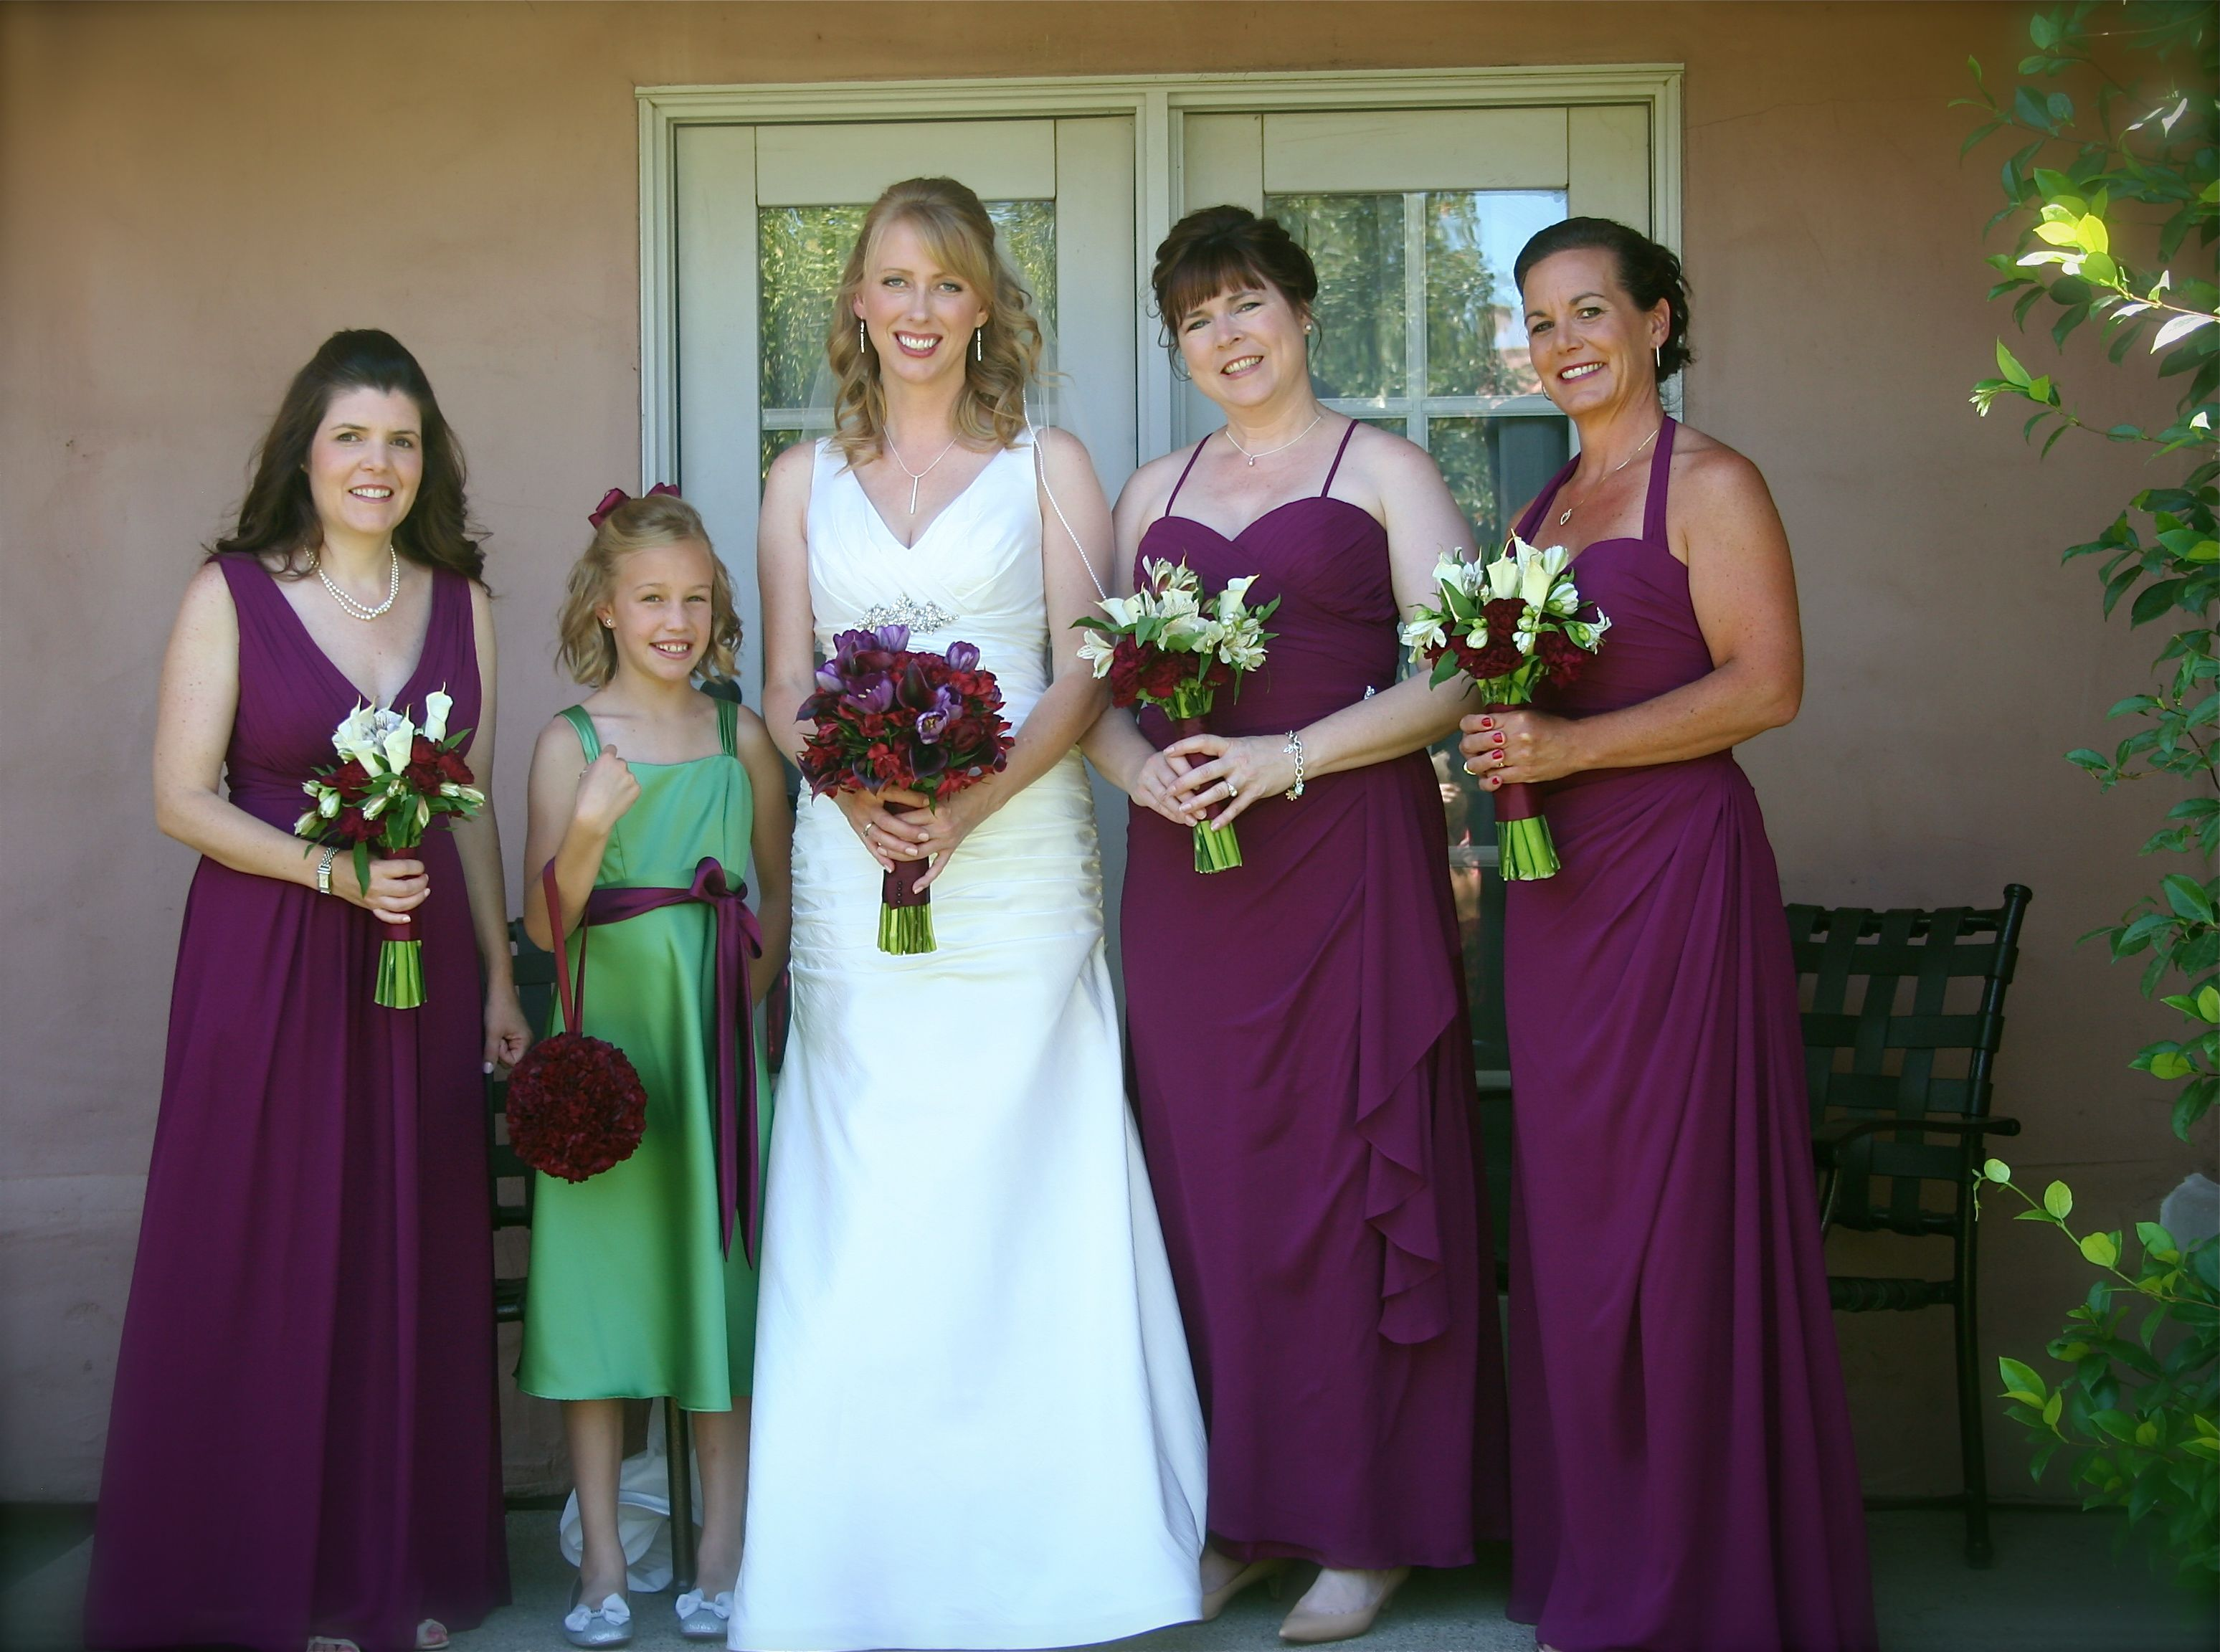 22216c0aac1 Different styles of bridesmaid dresses by Bill Levkoff in sangria. I think  the halter dress if nice